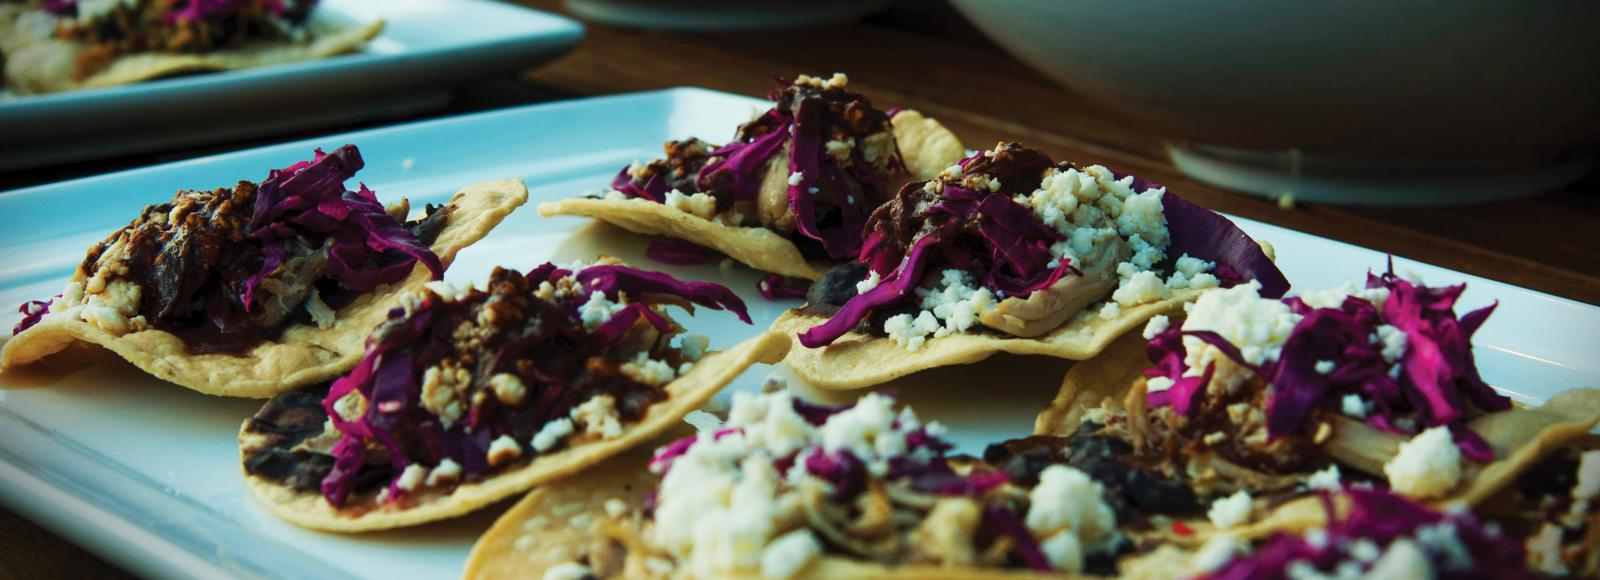 A tray of tacos topped with beef, cabbage, and cotija cheese